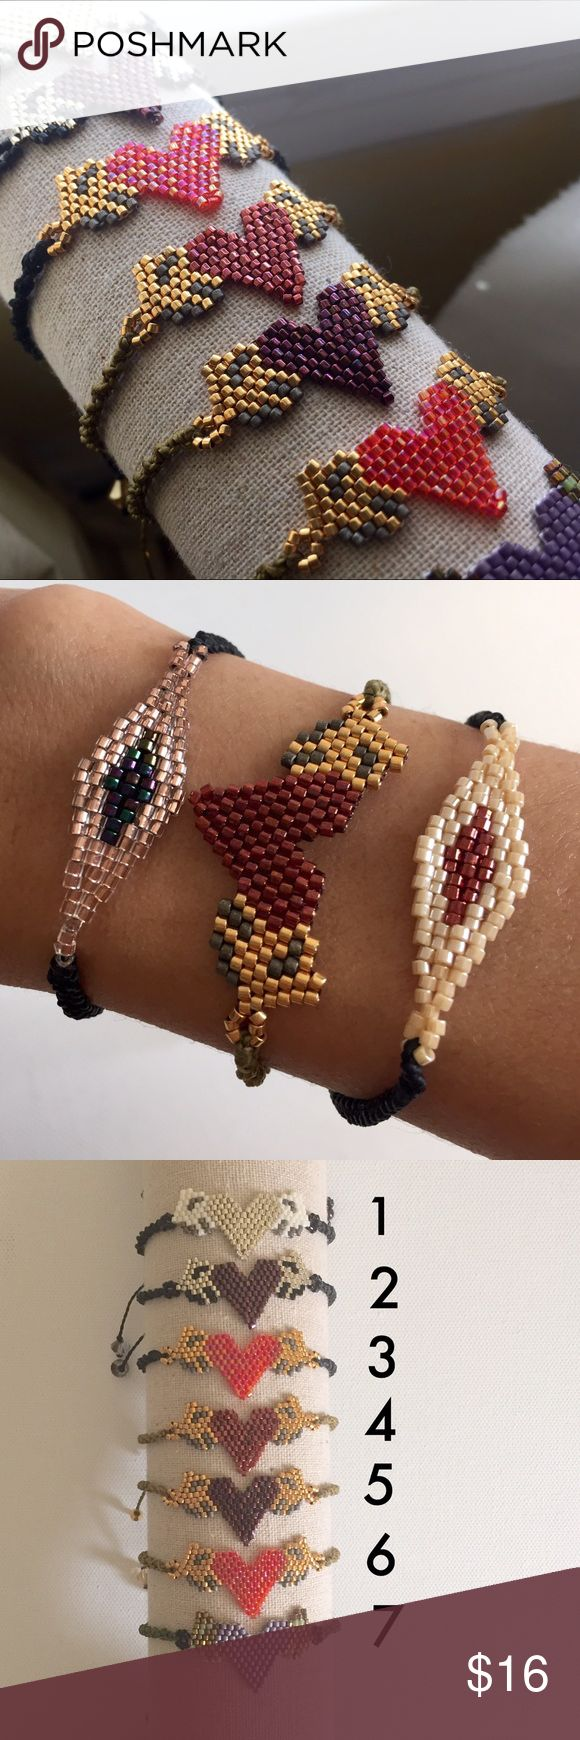 Gorgeous Hand Made Corazon Con Alas Bracelet *Hand made from artisans of Jalisco, Mexico.         *Great for yourself or as a gift.                                 *Huichol Art.                                                                *Bracelet is adjustable                                                *Made of waxed thread and fine beads.                   *Swarovski crystals.                                                     *Price is FIRM Jewelry Bracelets